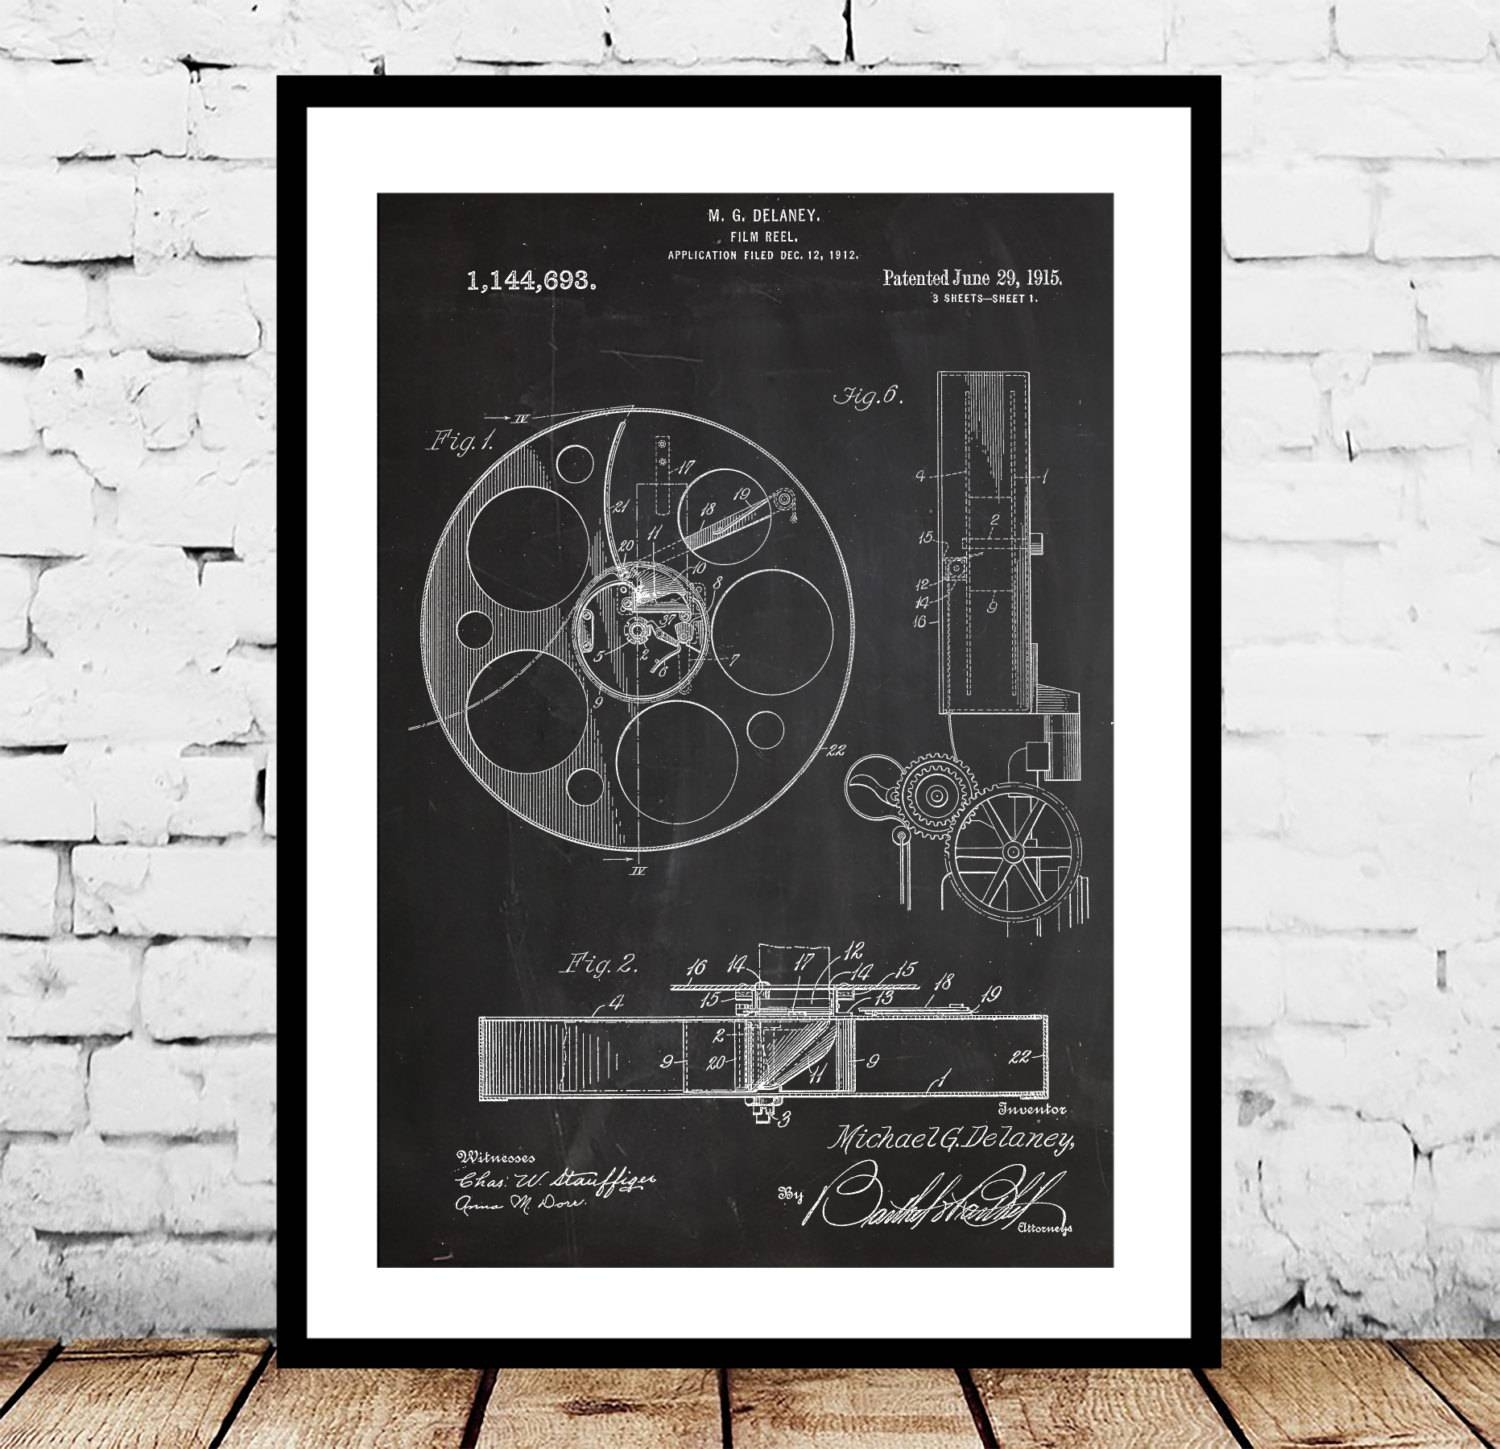 Film Reel Patent, Film Reel Poster , Film Reel Print, Film Reel In Best And Newest Film Reel Wall Art (View 11 of 30)